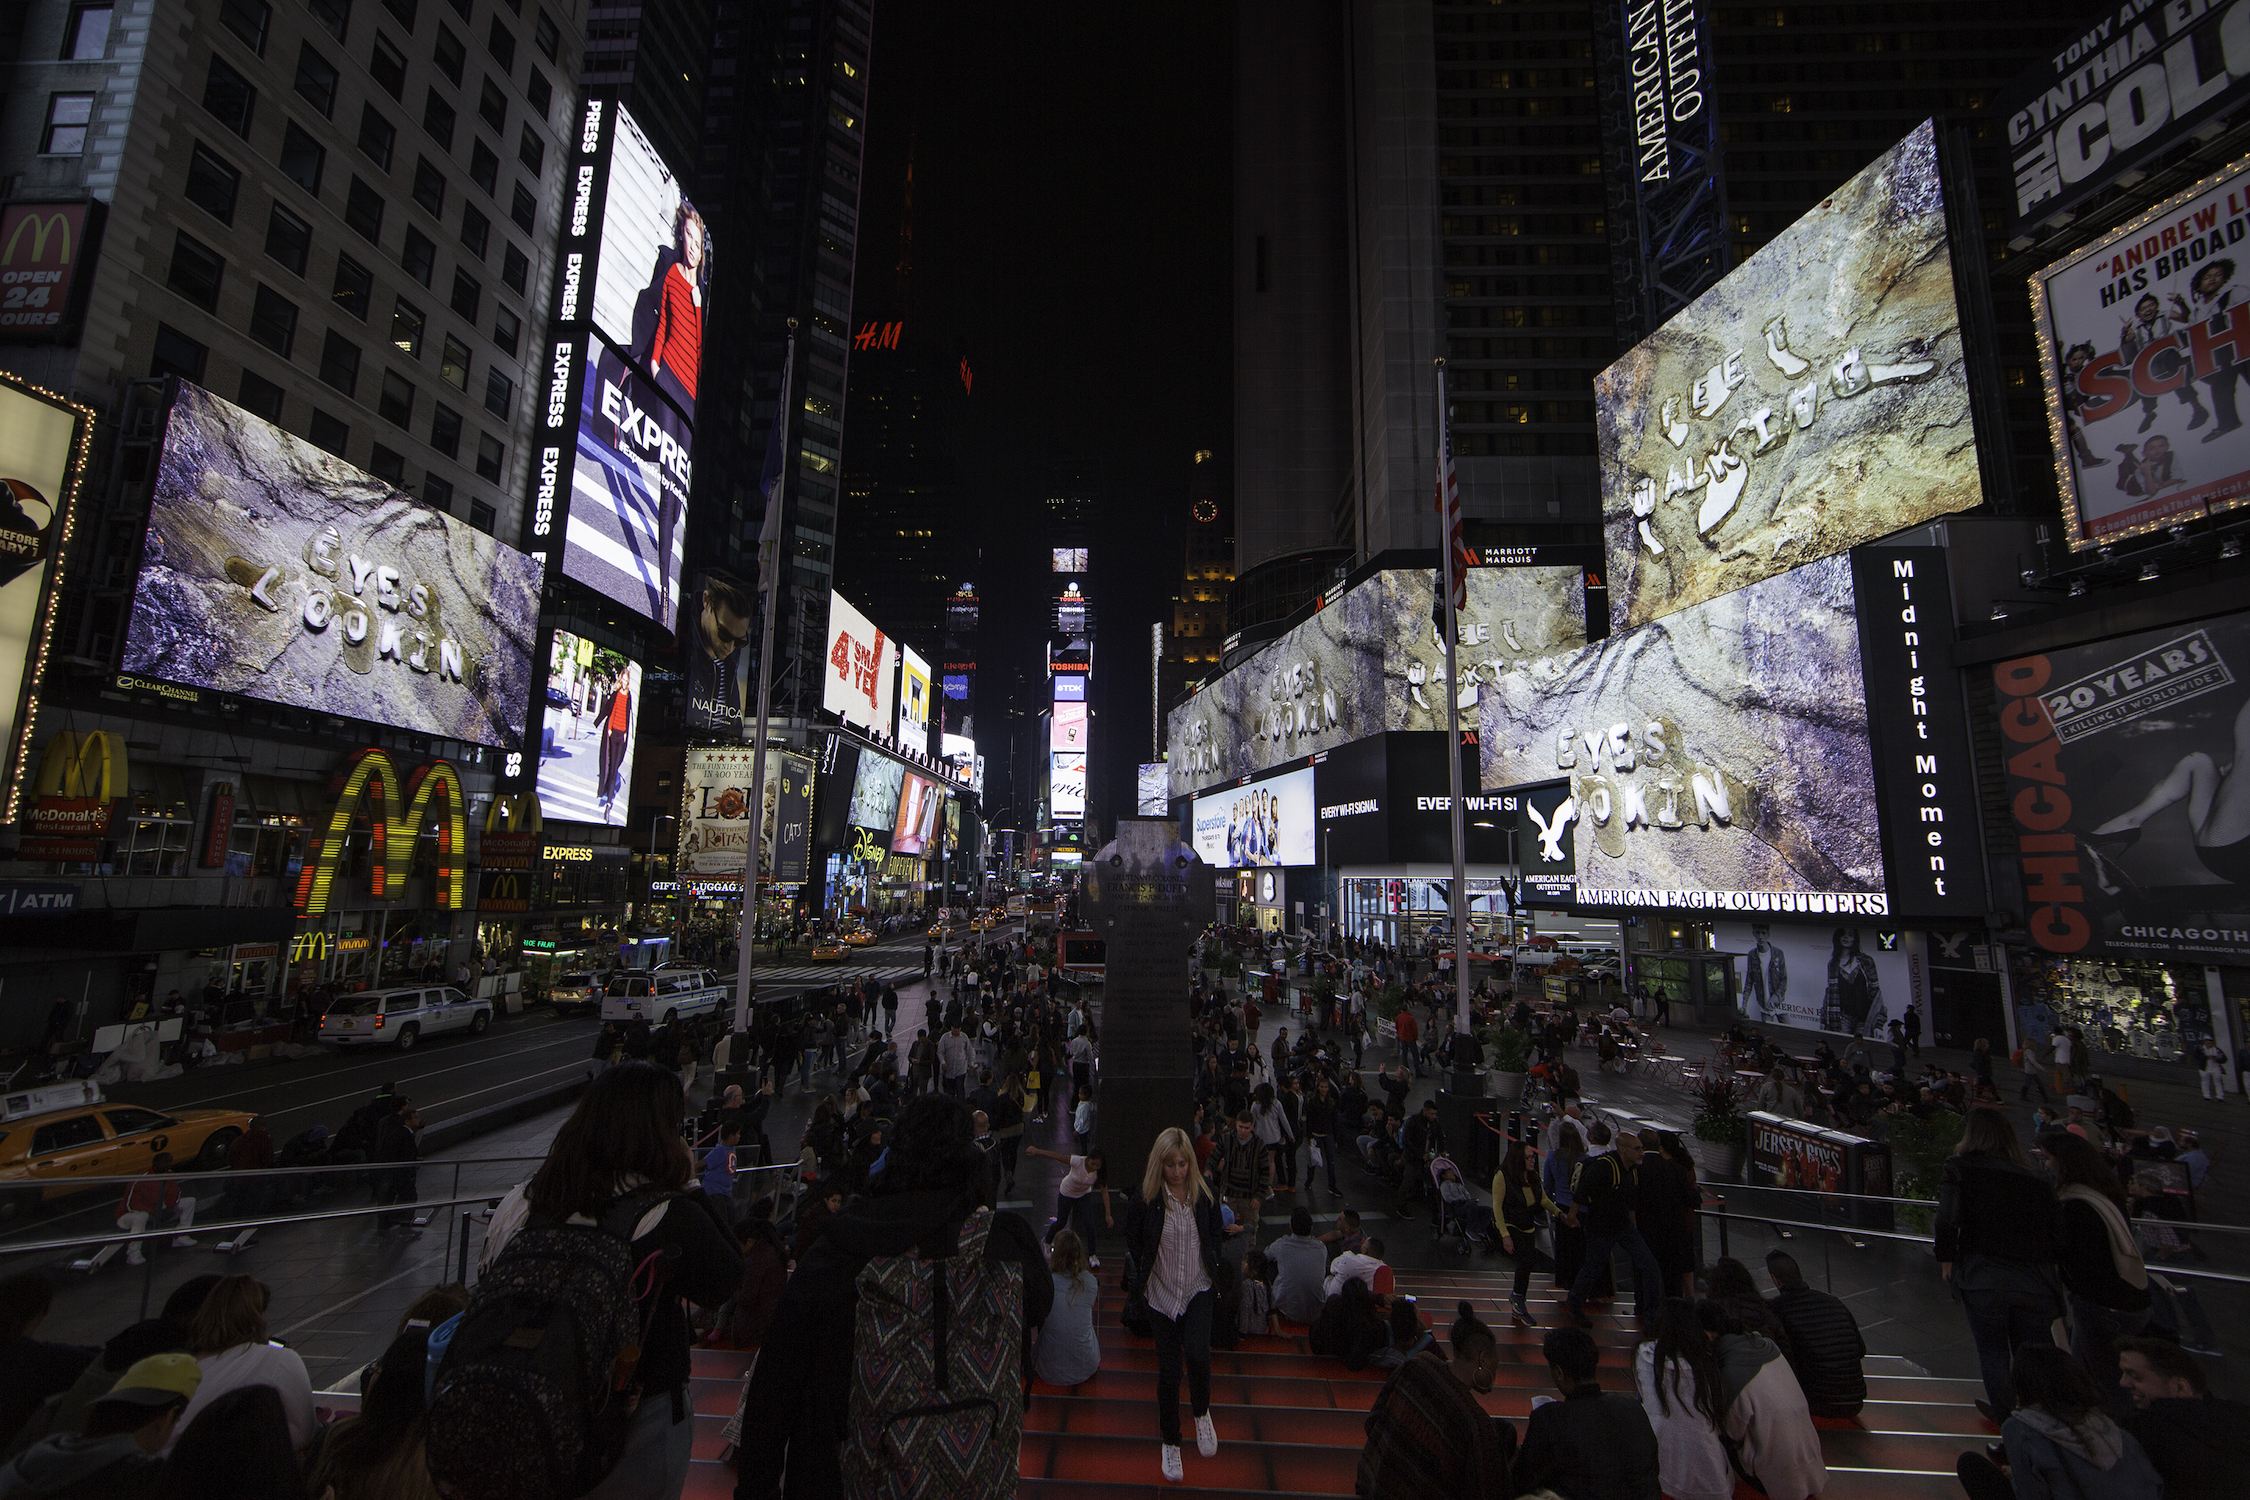 Tim Etchells, Eyes Looking, 2016. Installation view. Times Square Arts Alliance 'Midnight Moments' series on the Times Square electronic display screens. Times Square, New York, US.